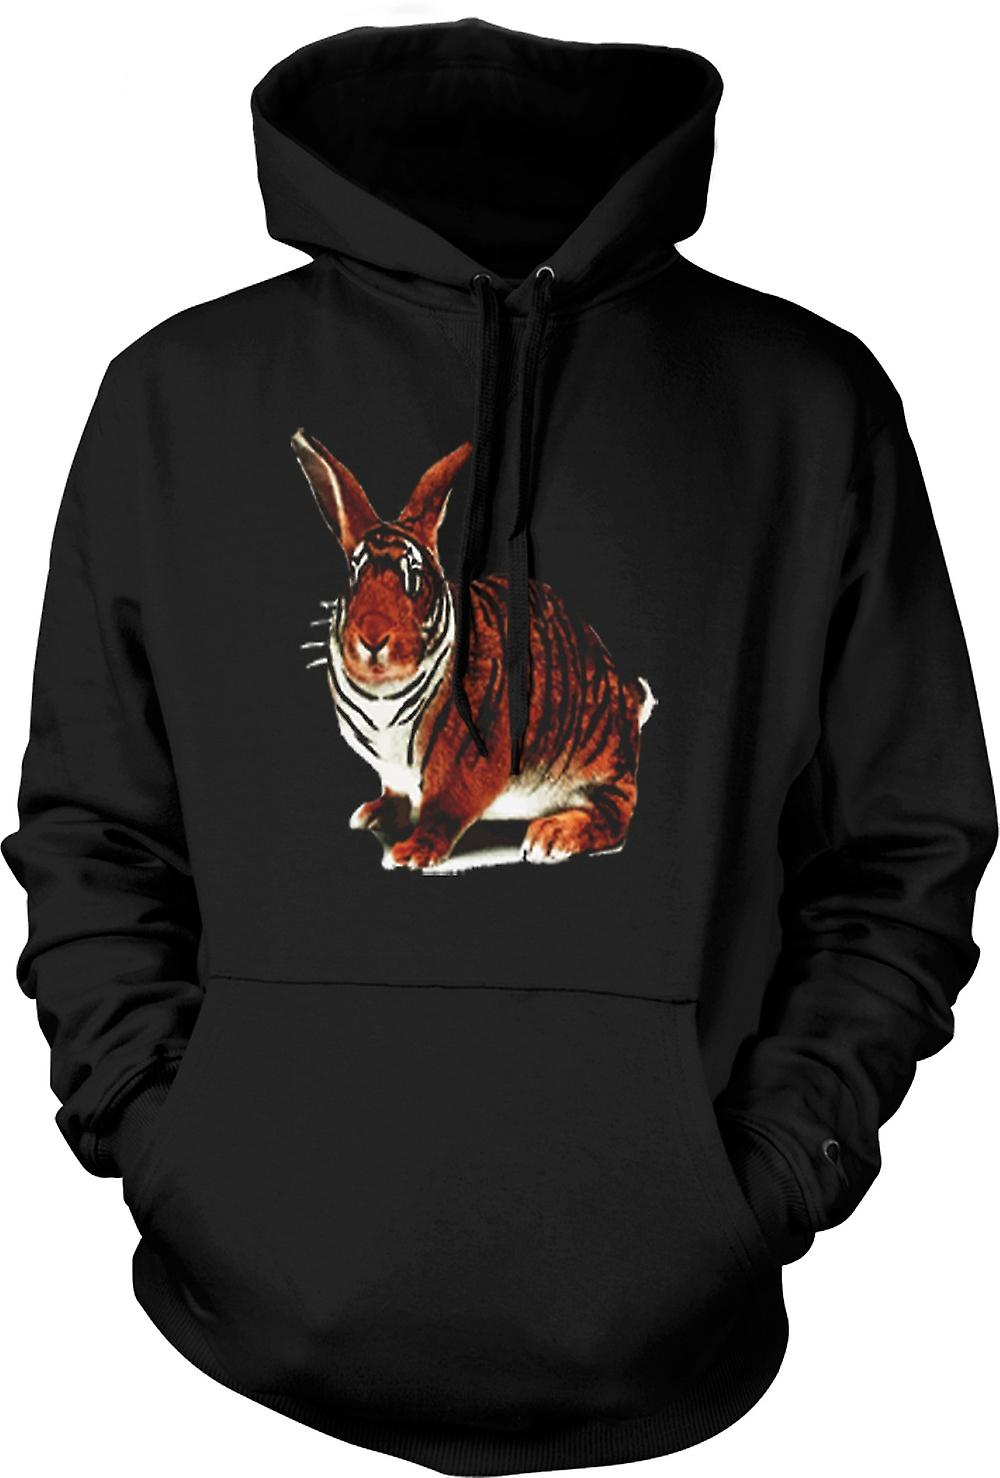 Barn Hoodie - Tiger kanin Pop Art Design